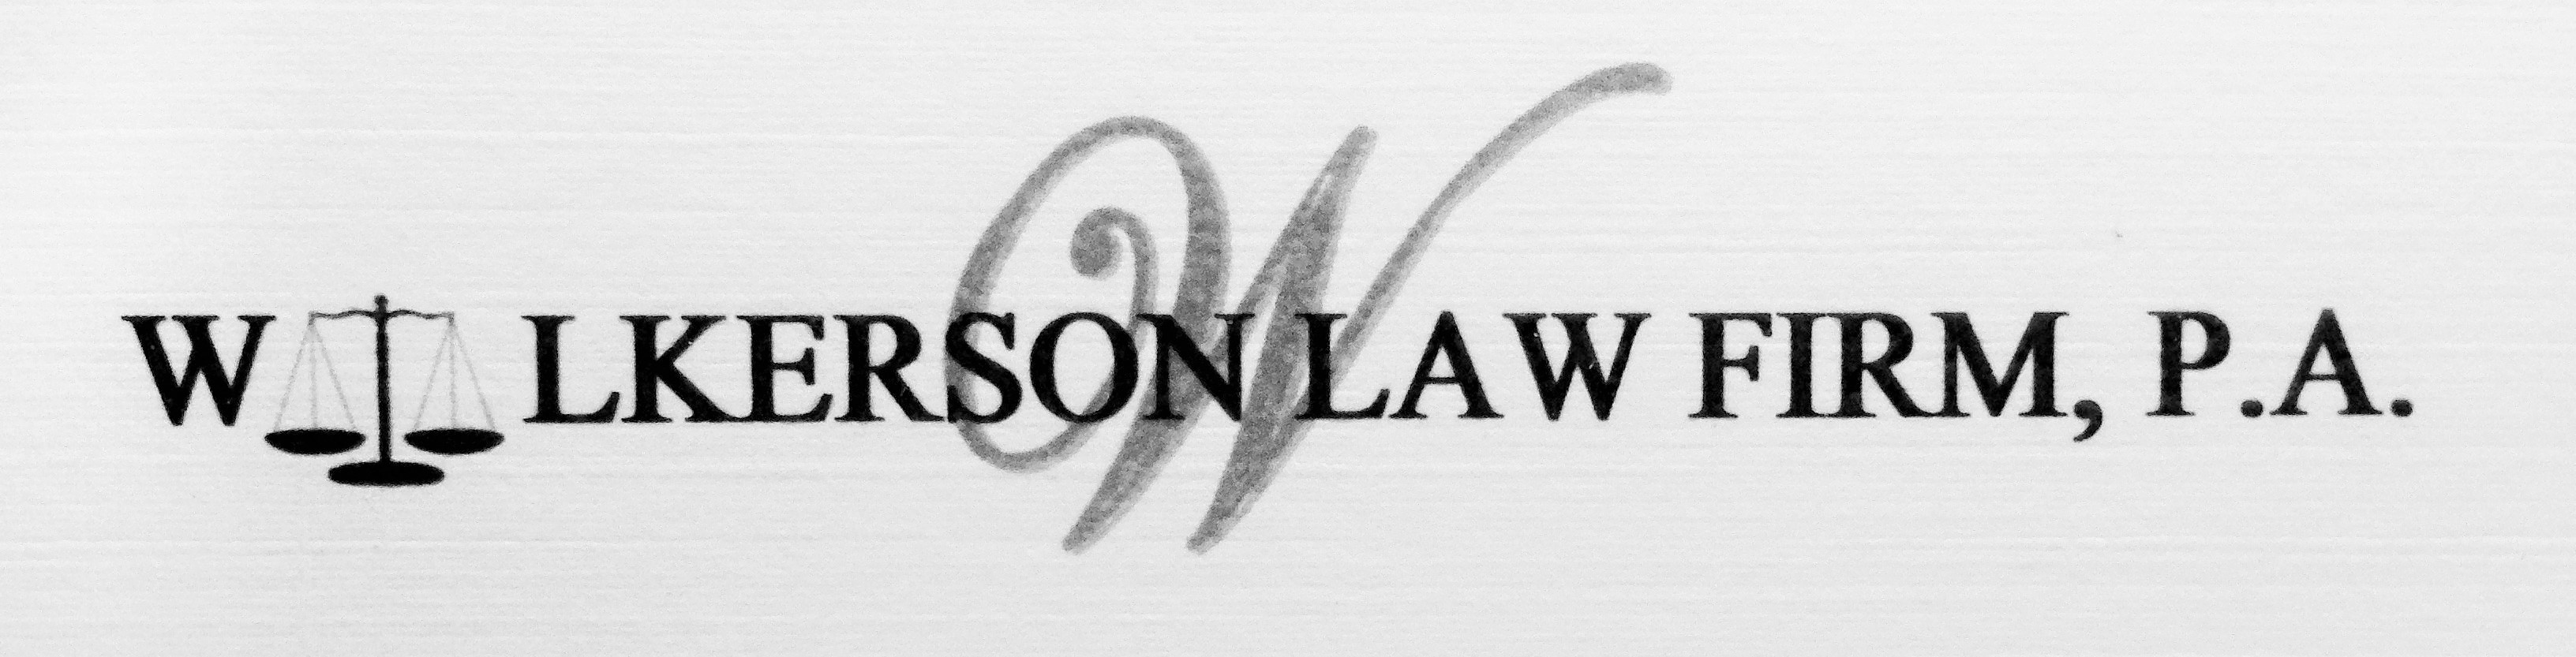 WILKERSON LAW FIRM - Brandon, Florida lawyer